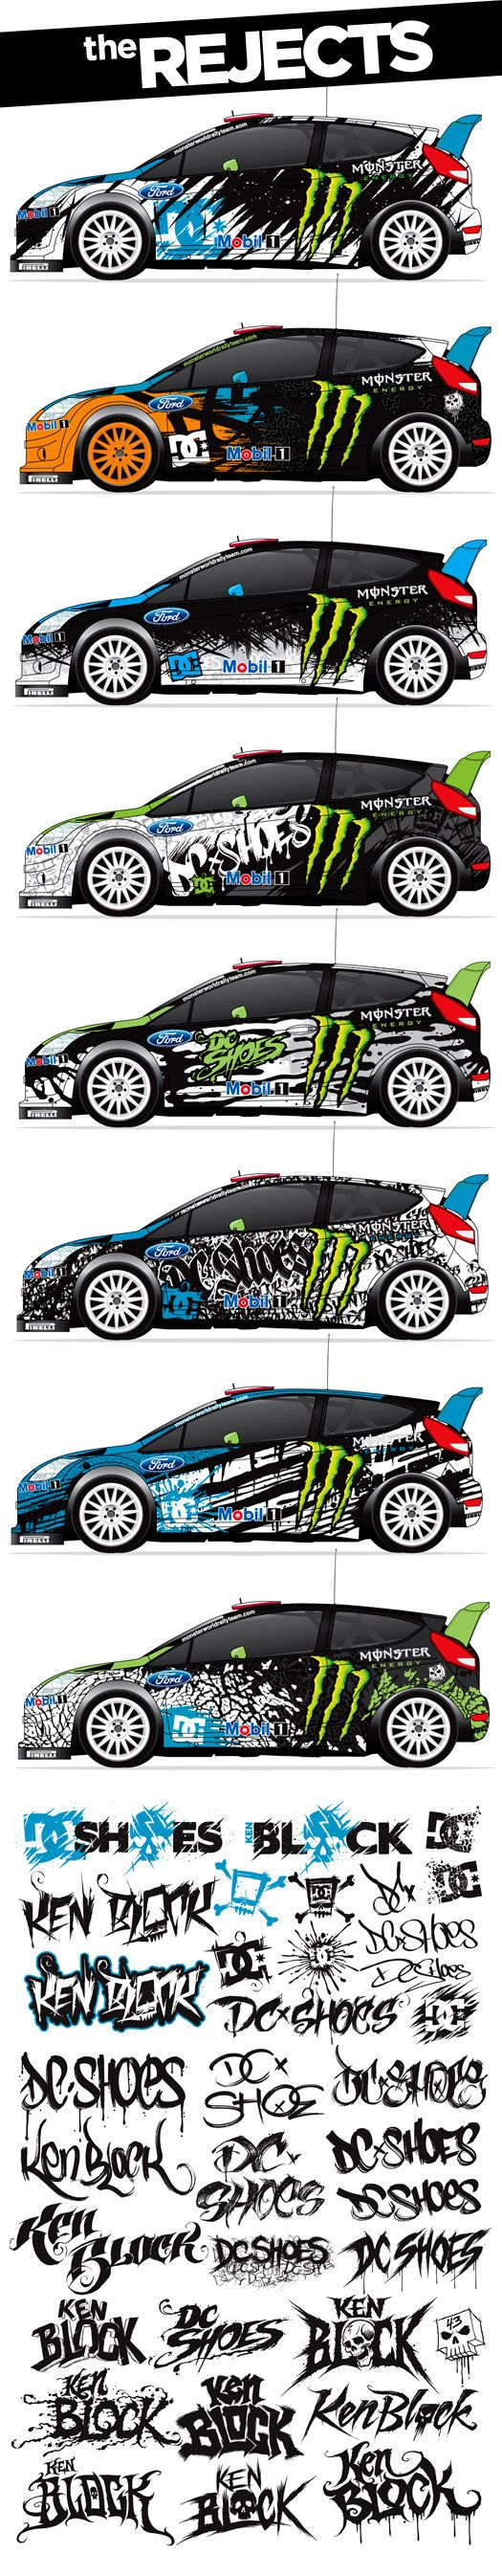 Best Vehicle Wrapping Images On Pinterest Vehicle Wraps Car - Racing car decals designpng race car wraps pinterest cars